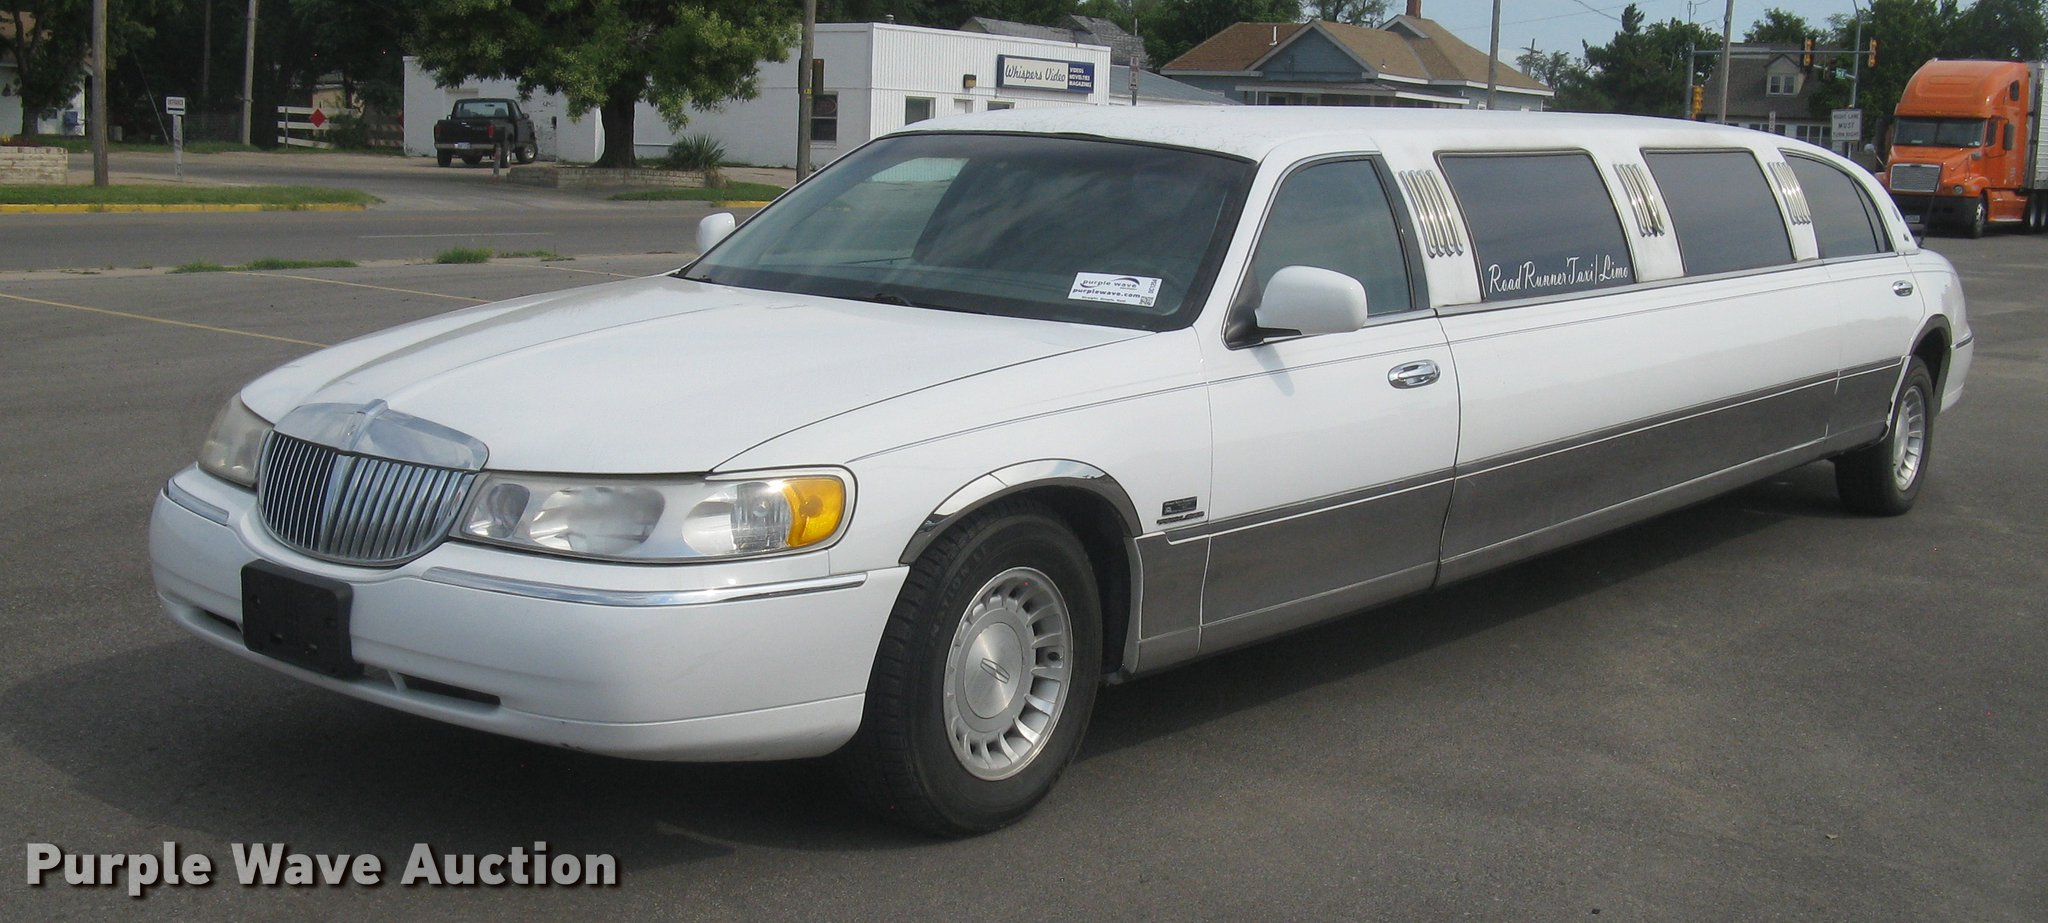 1998 Lincoln Town Car Limousine Item Dc1254 Sold Septem Image For